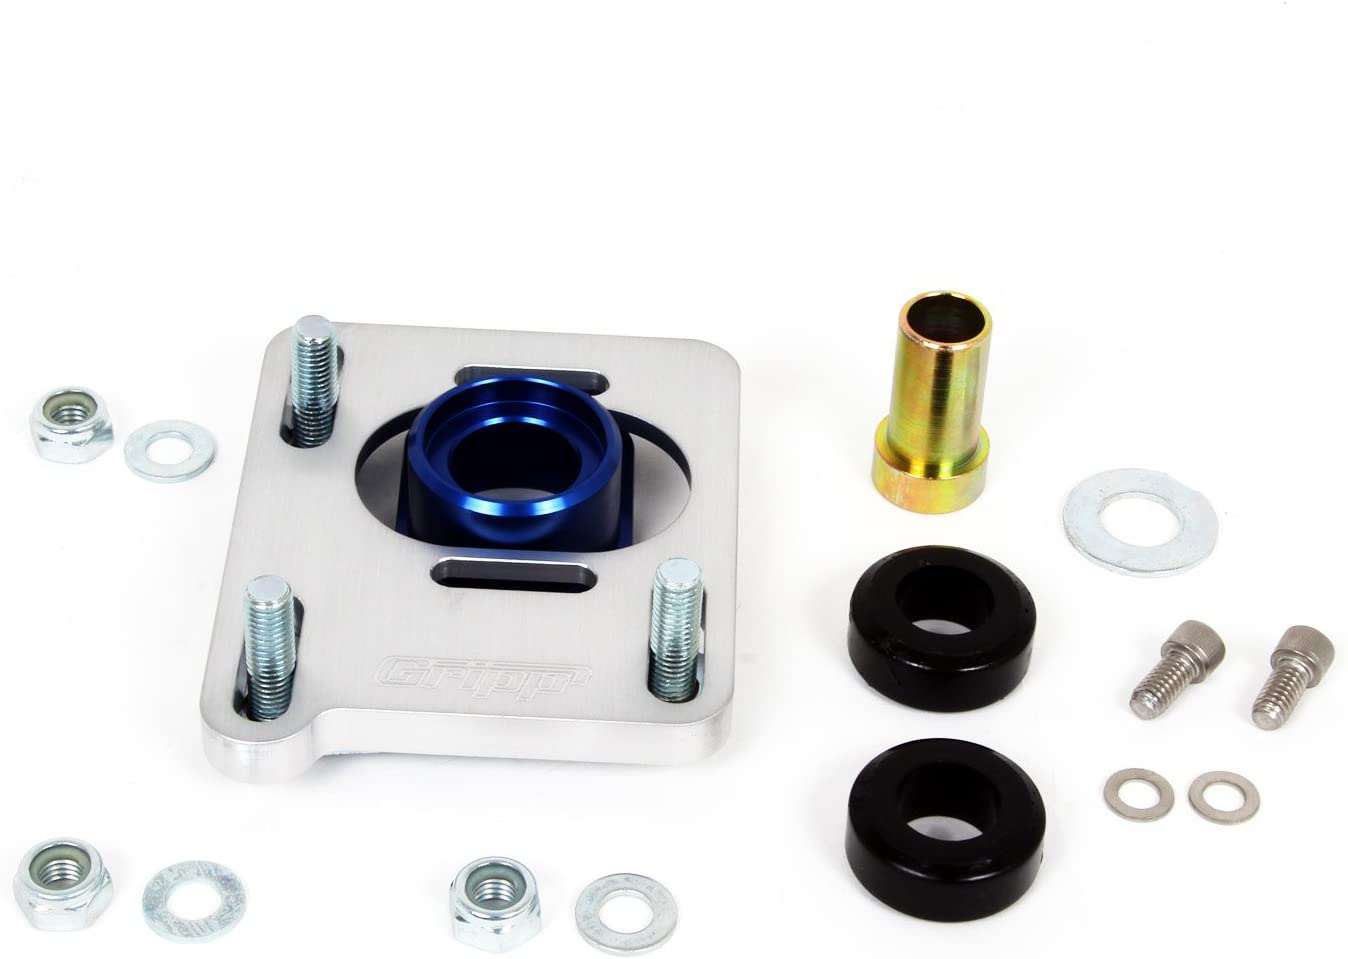 BBK Performance 2527 Caster Camber Alignment Kit for Ford Mustang CNC Machined Billet Aluminum With Clean Anodized Finish